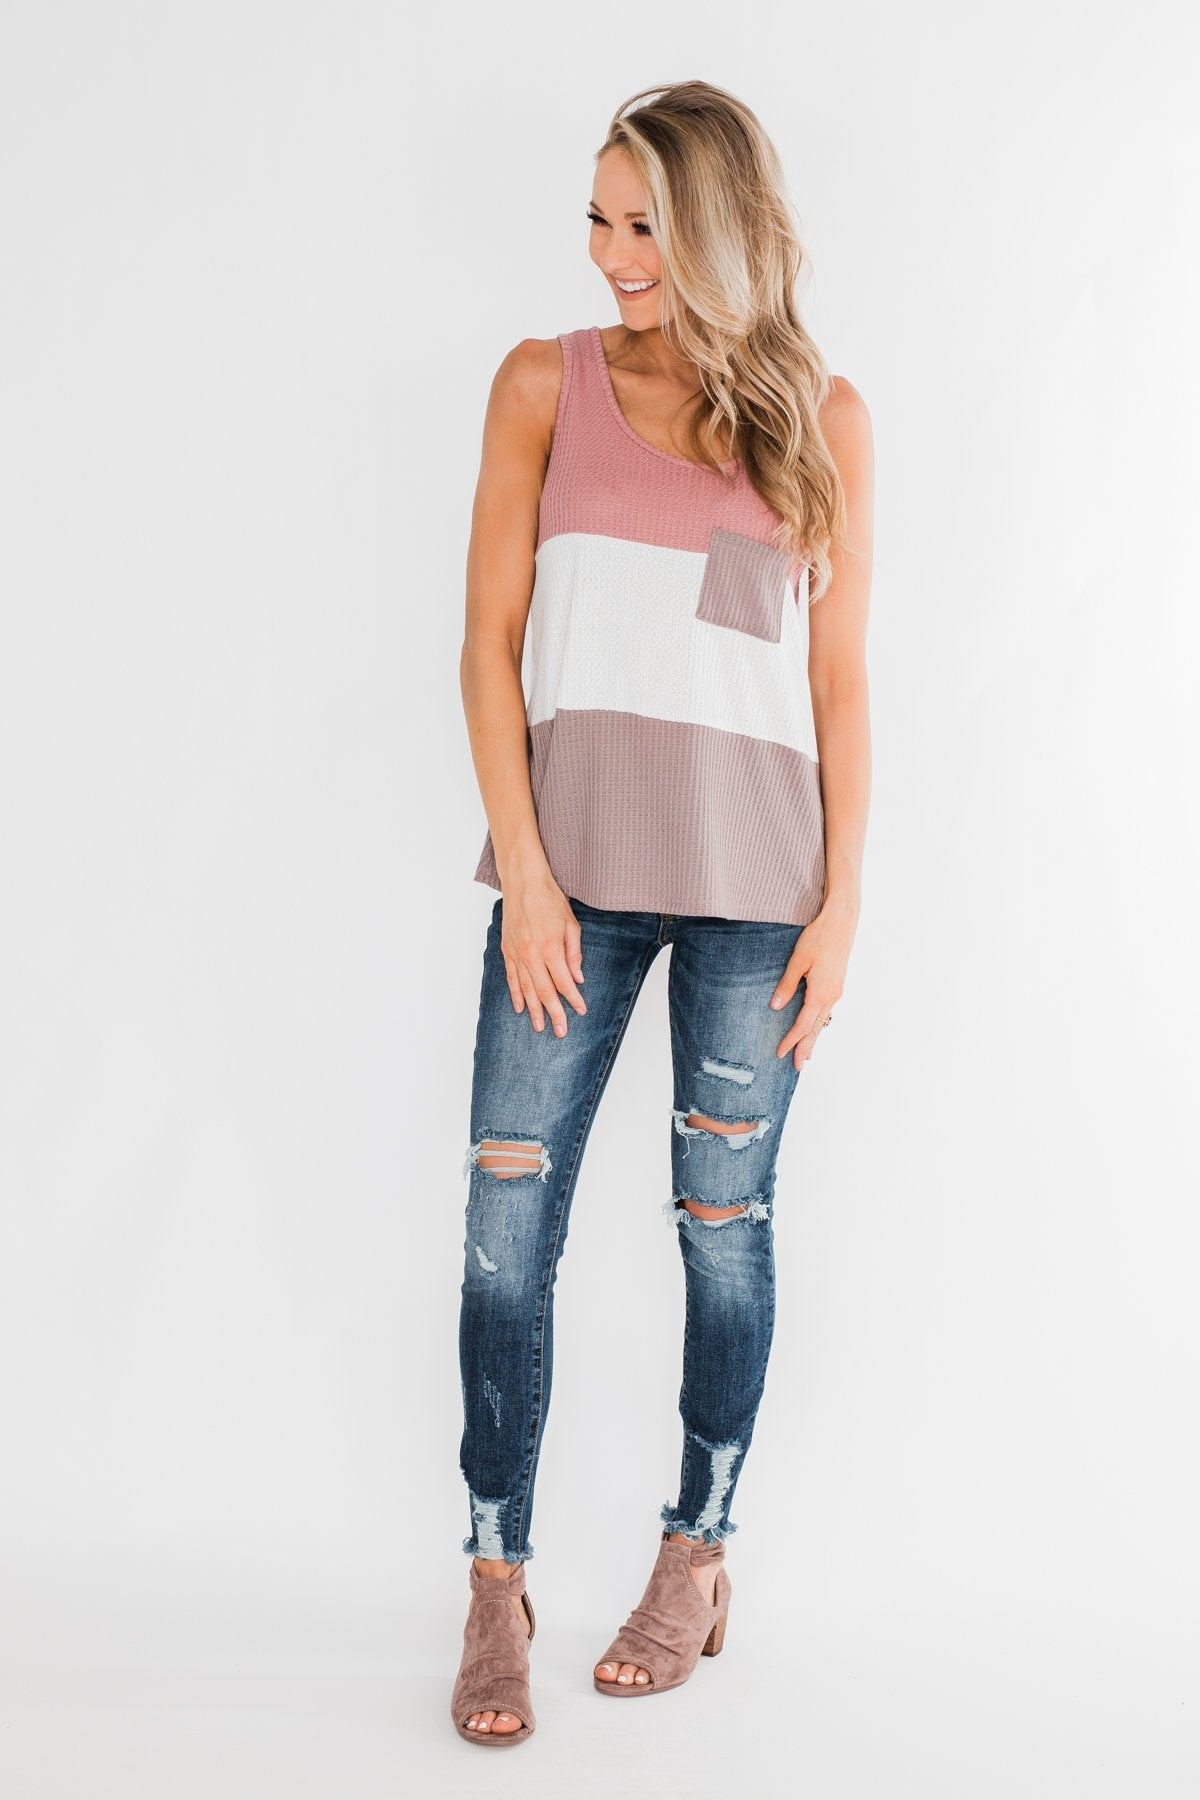 Waffle Knit Color Block Tank Top- Dusty Pink, Ivory, & Mocha